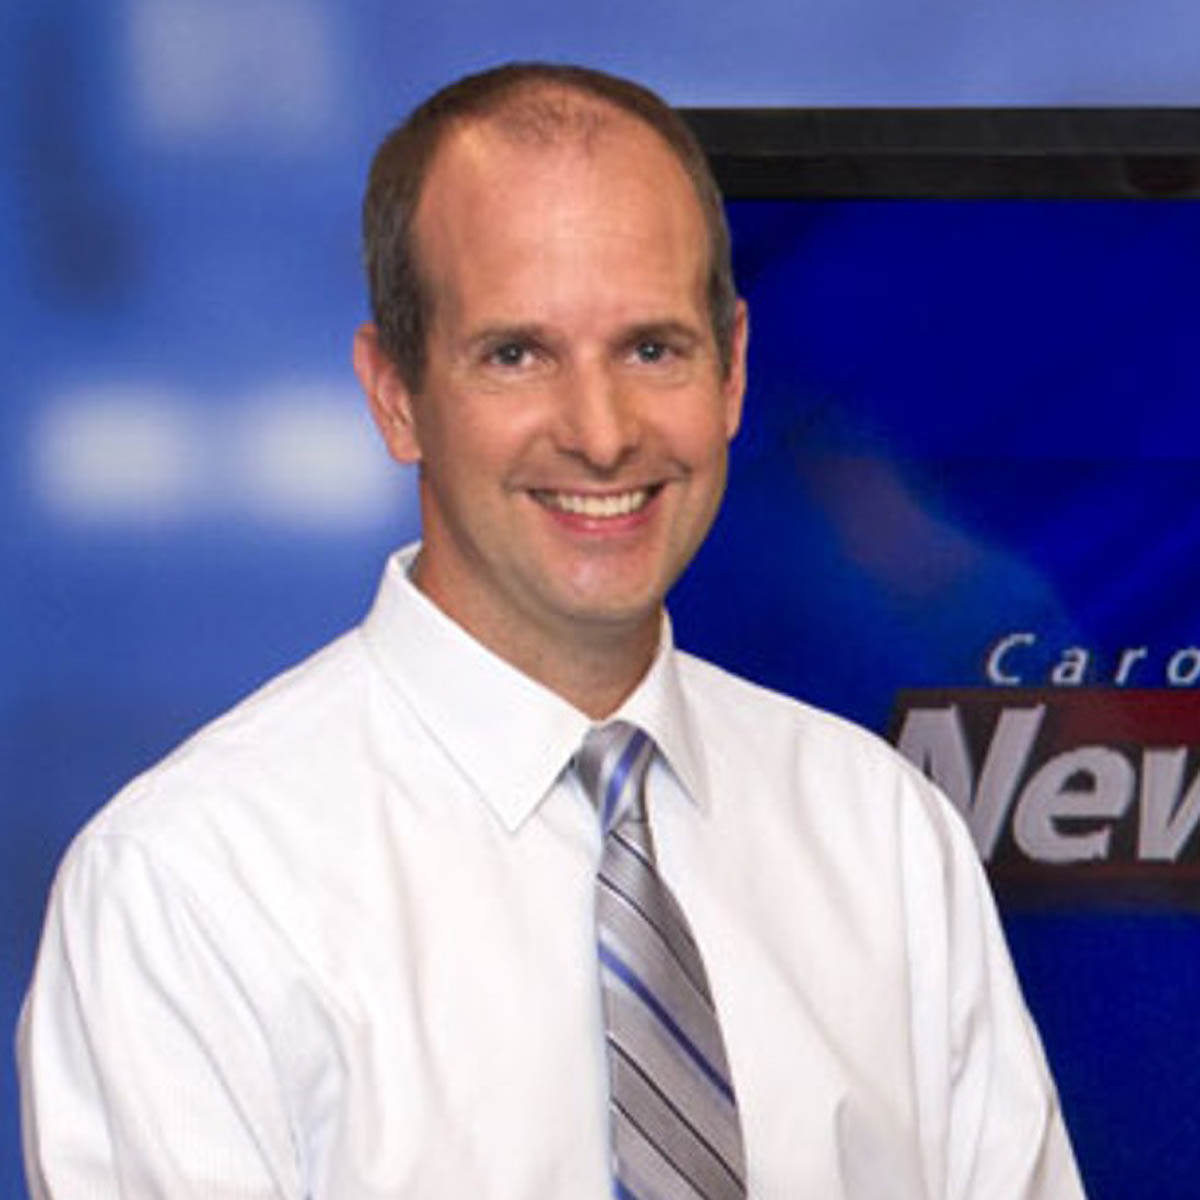 Brad Panovich services for WCNC News